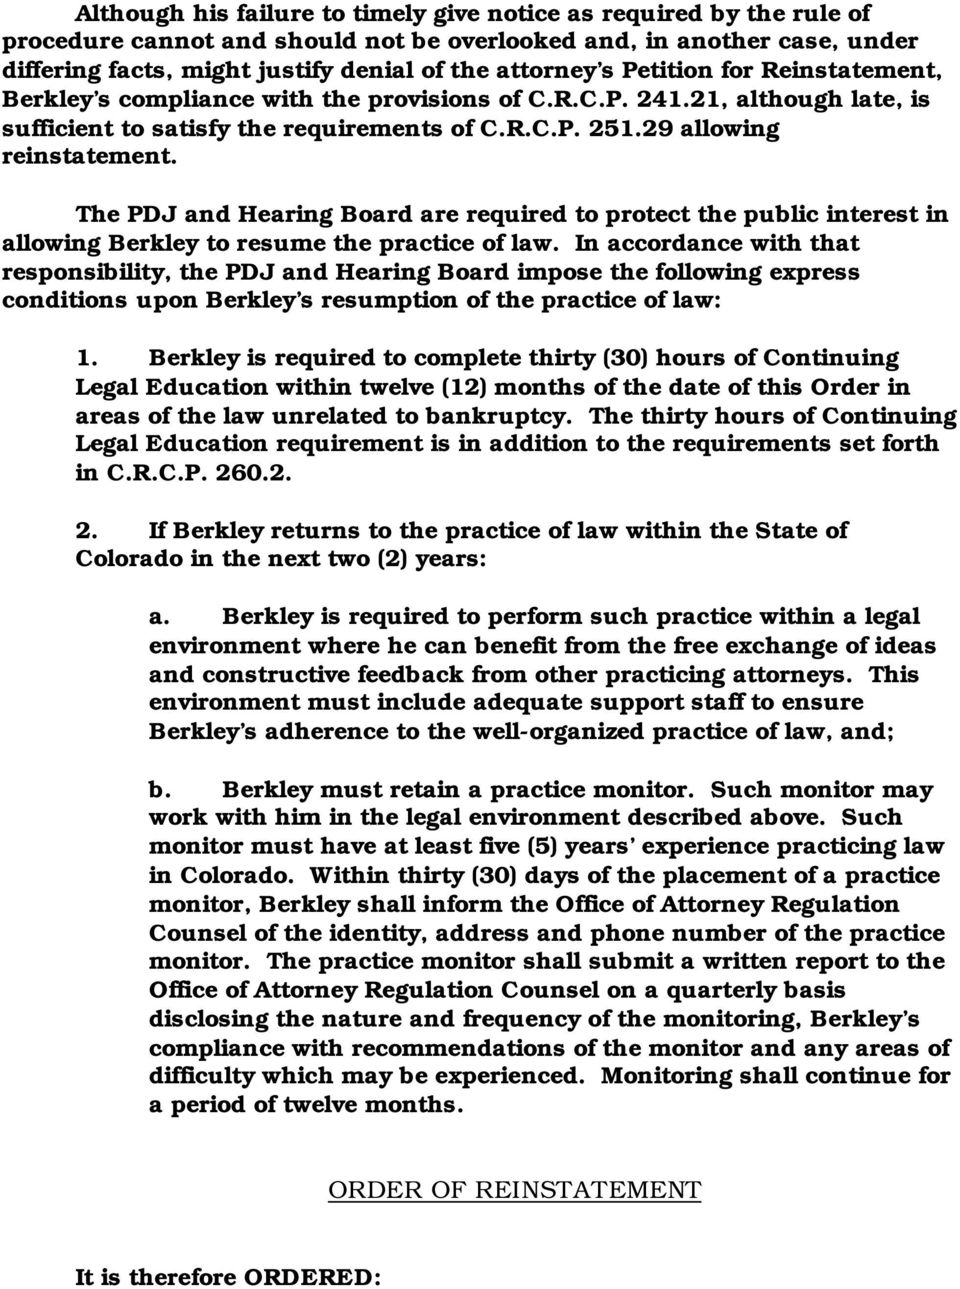 The PDJ and Hearing Board are required to protect the public interest in allowing Berkley to resume the practice of law.